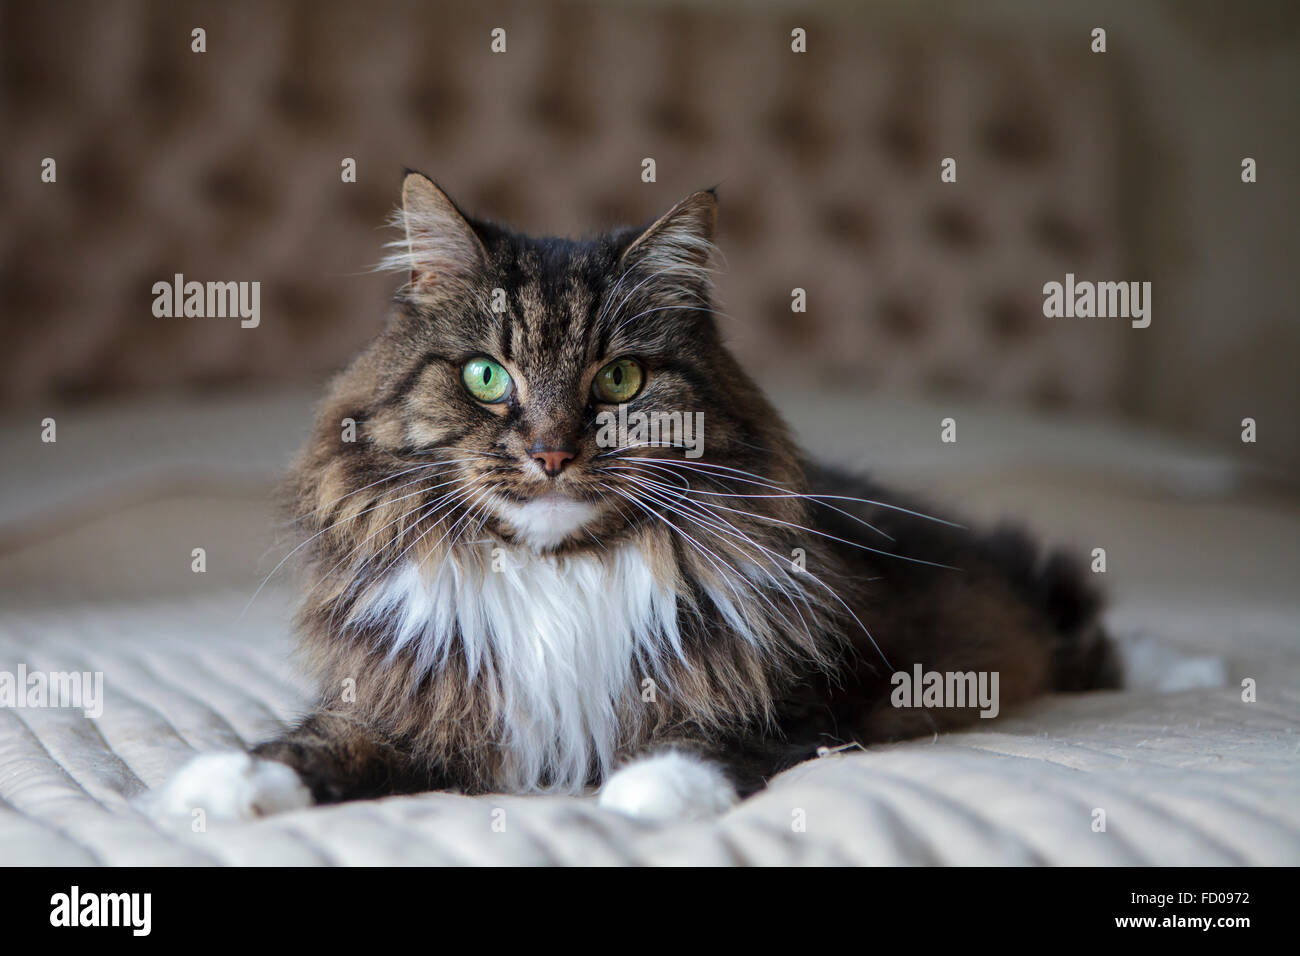 Long haired cat on the bed Stock Photo